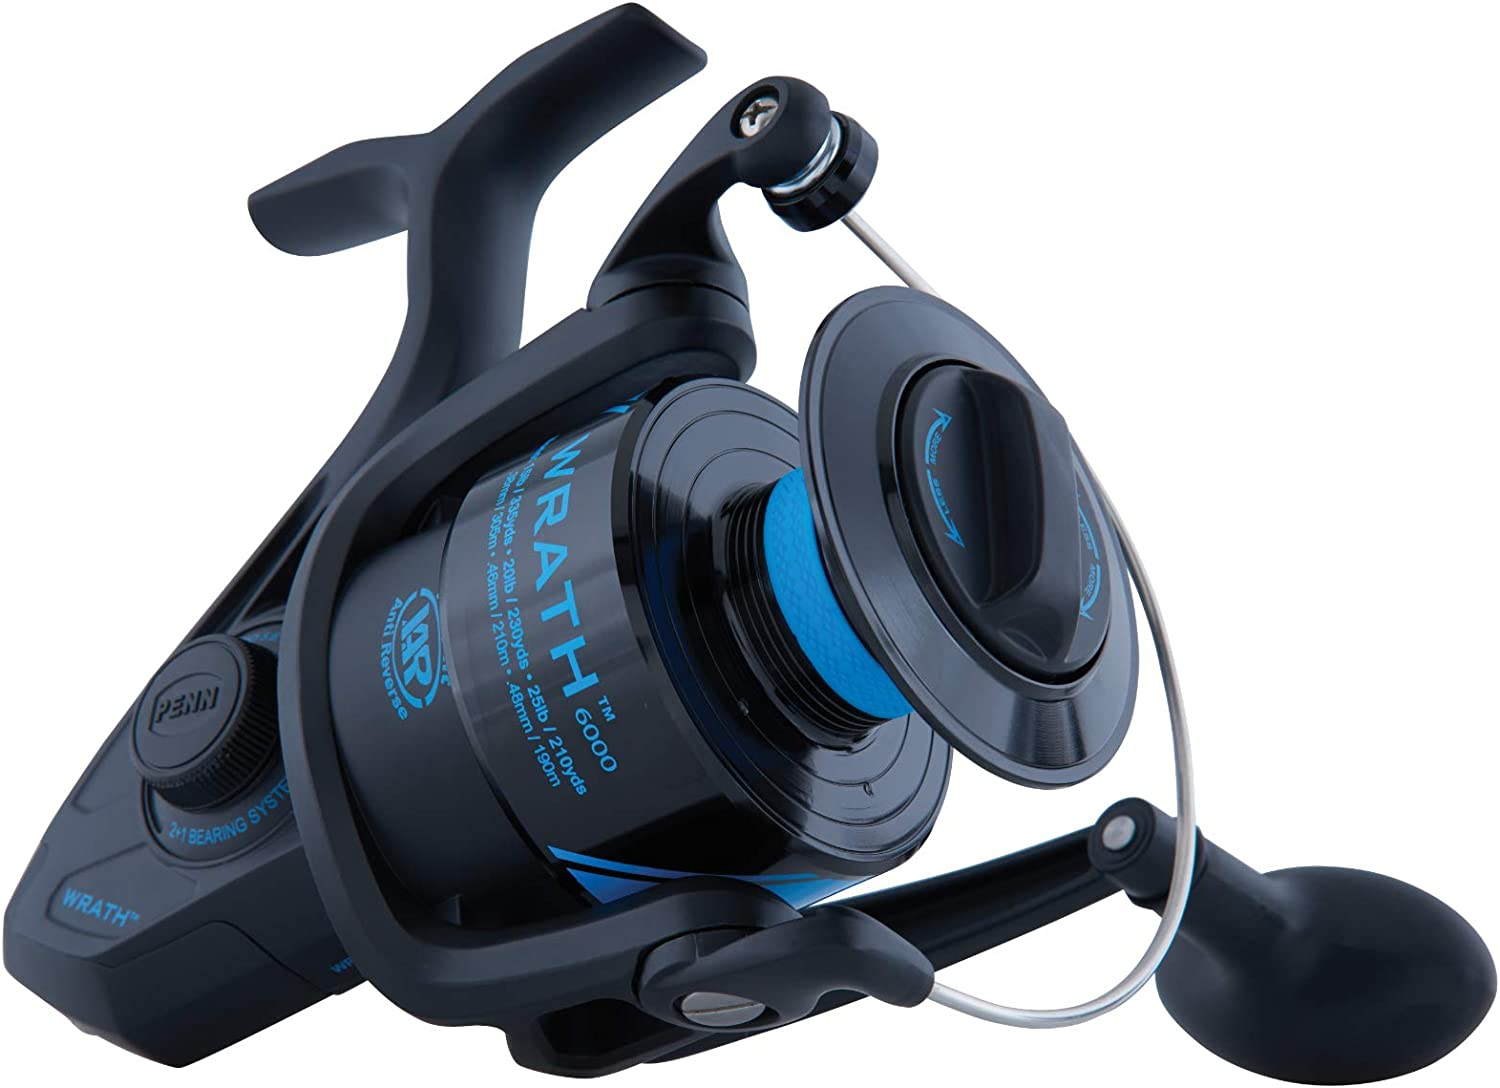 Penn Wrath Spinning WRTH 6000C Fishing Reel